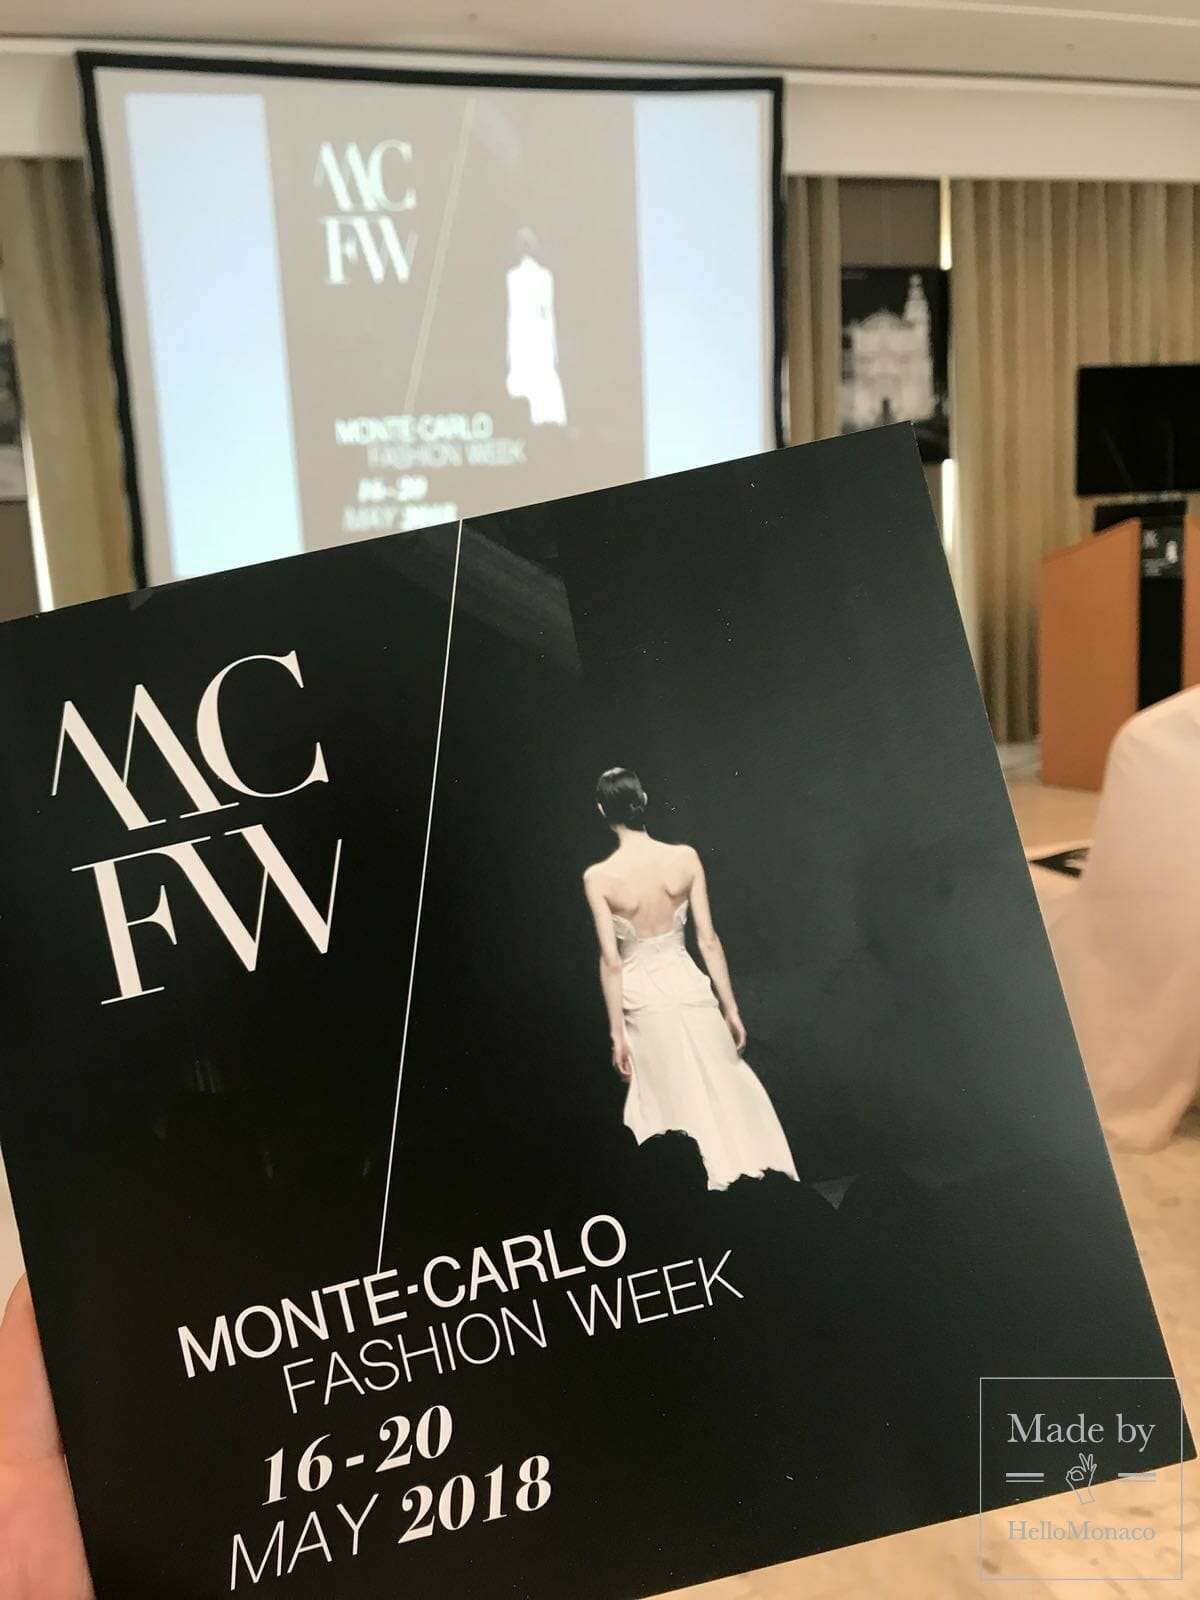 Monte-Carlo Fashion Week 2018